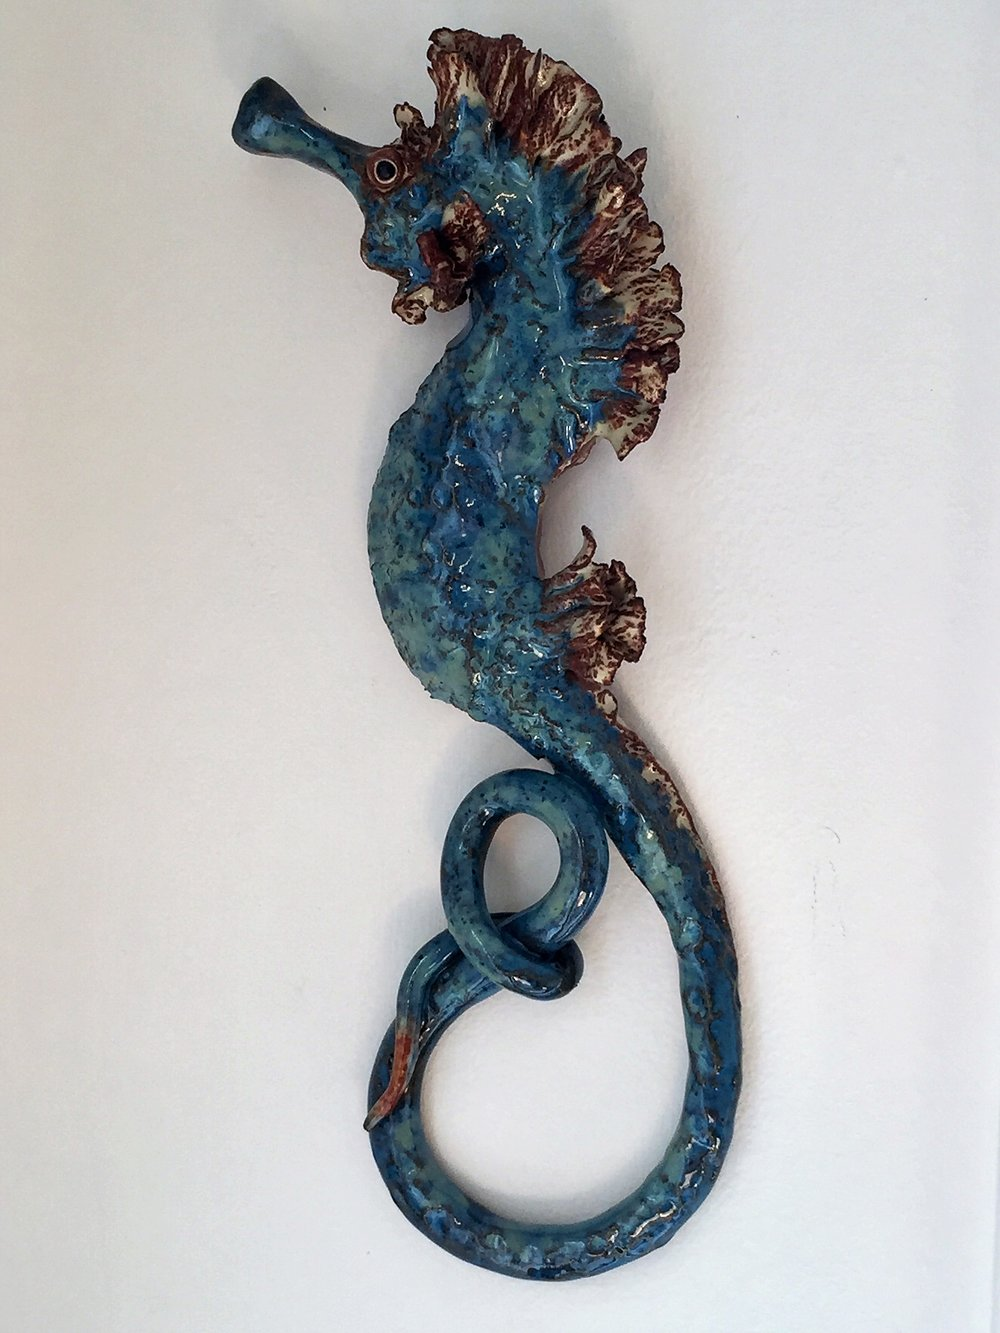 - Vicki Sutton CeramicsVicki's creative spirit and sculptural talent in clay creates whimsical sea creatures for any decor.  From mermaids and seahorses to stingrays and octopus, they will charm you.